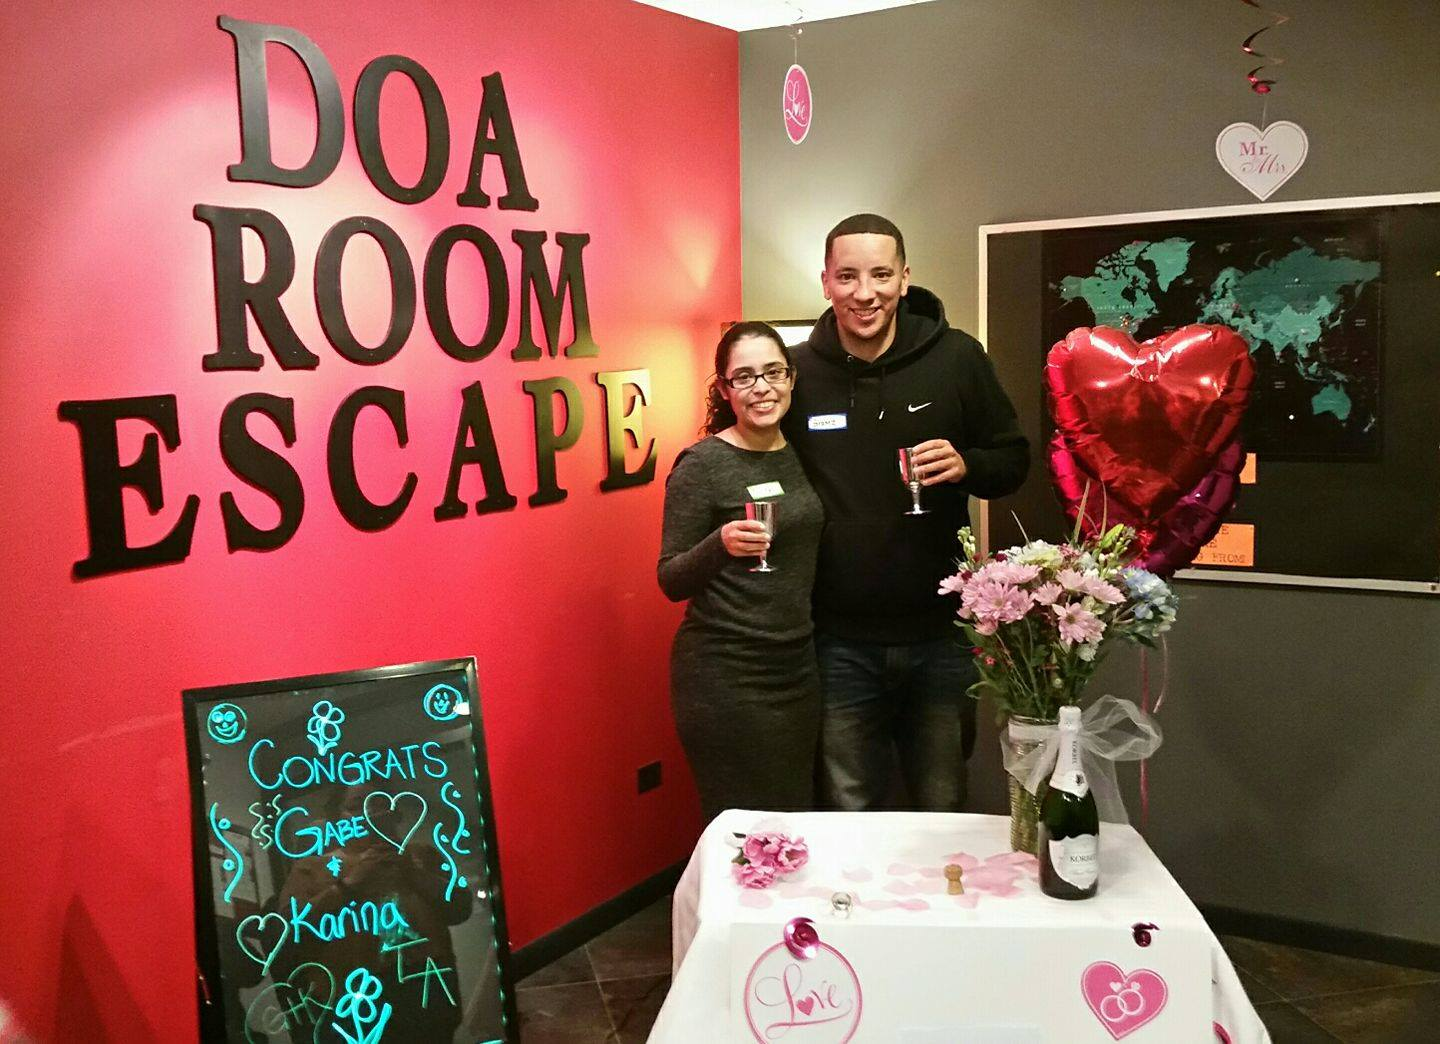 "B96 ""The J Show"" producer and host, Gabe Ramirez and his fiancee, Karina, celebrate their engagement at D.O.A.!"